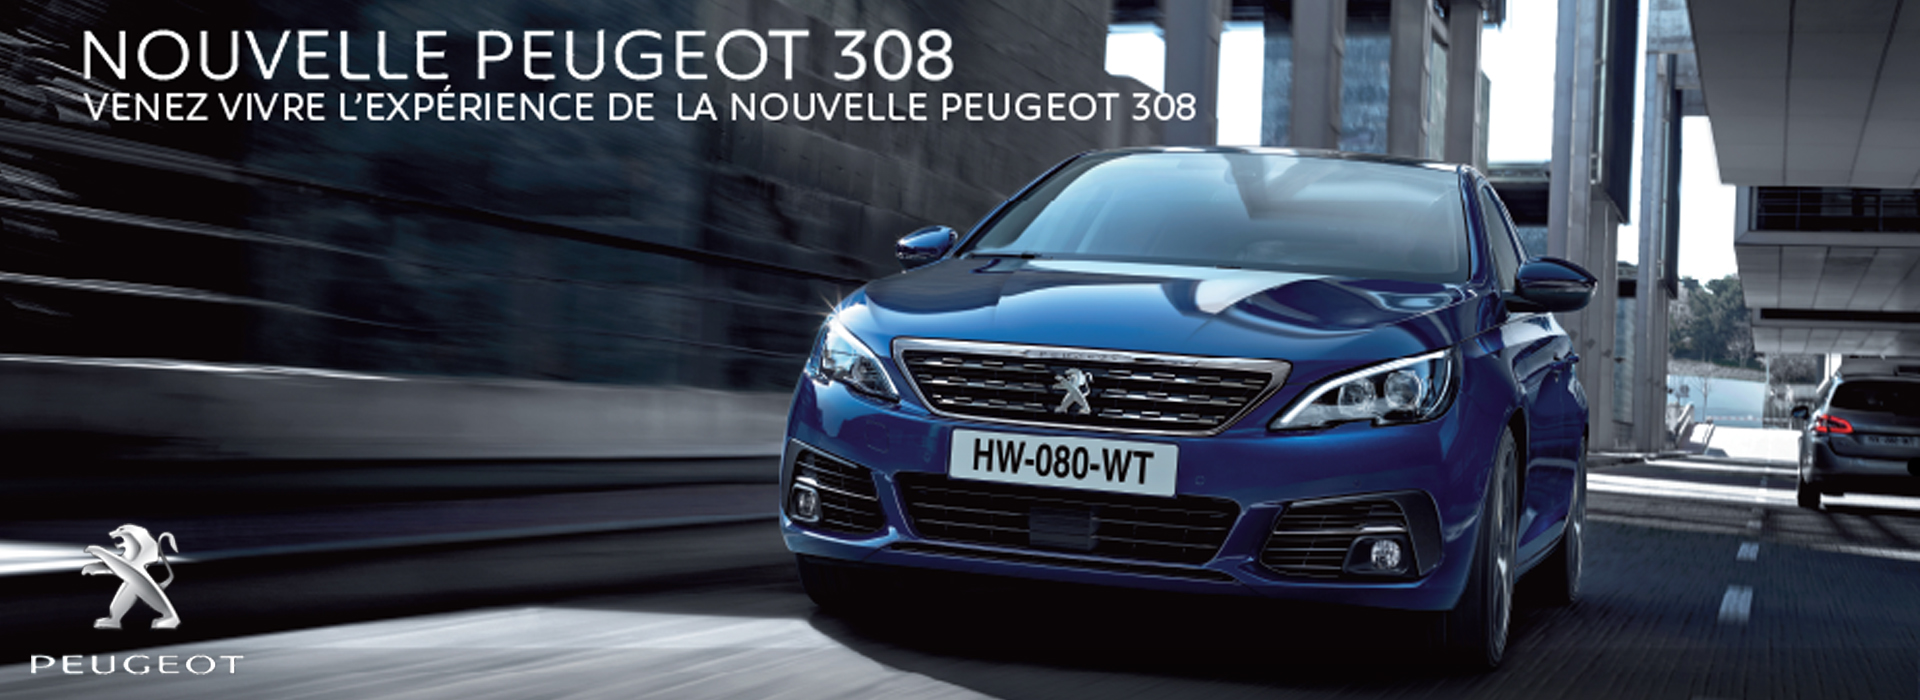 nouvelle peugeot 308 peugeot aix en provence gardanne. Black Bedroom Furniture Sets. Home Design Ideas